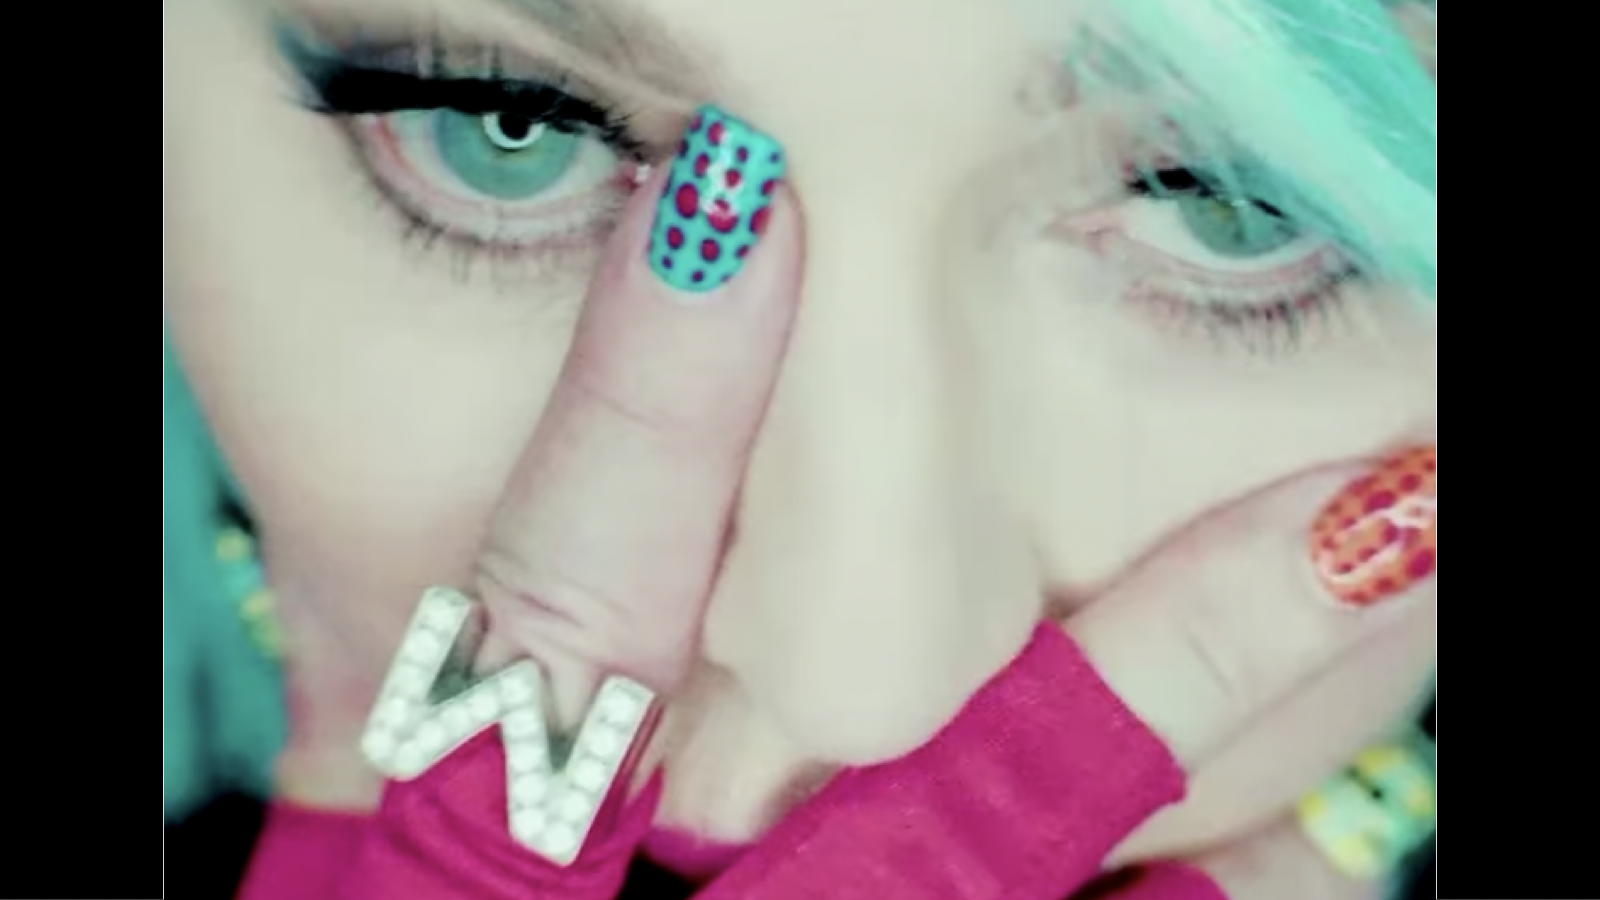 Madonna fundraises for youth & drops a new video just to kick off Pride weekend